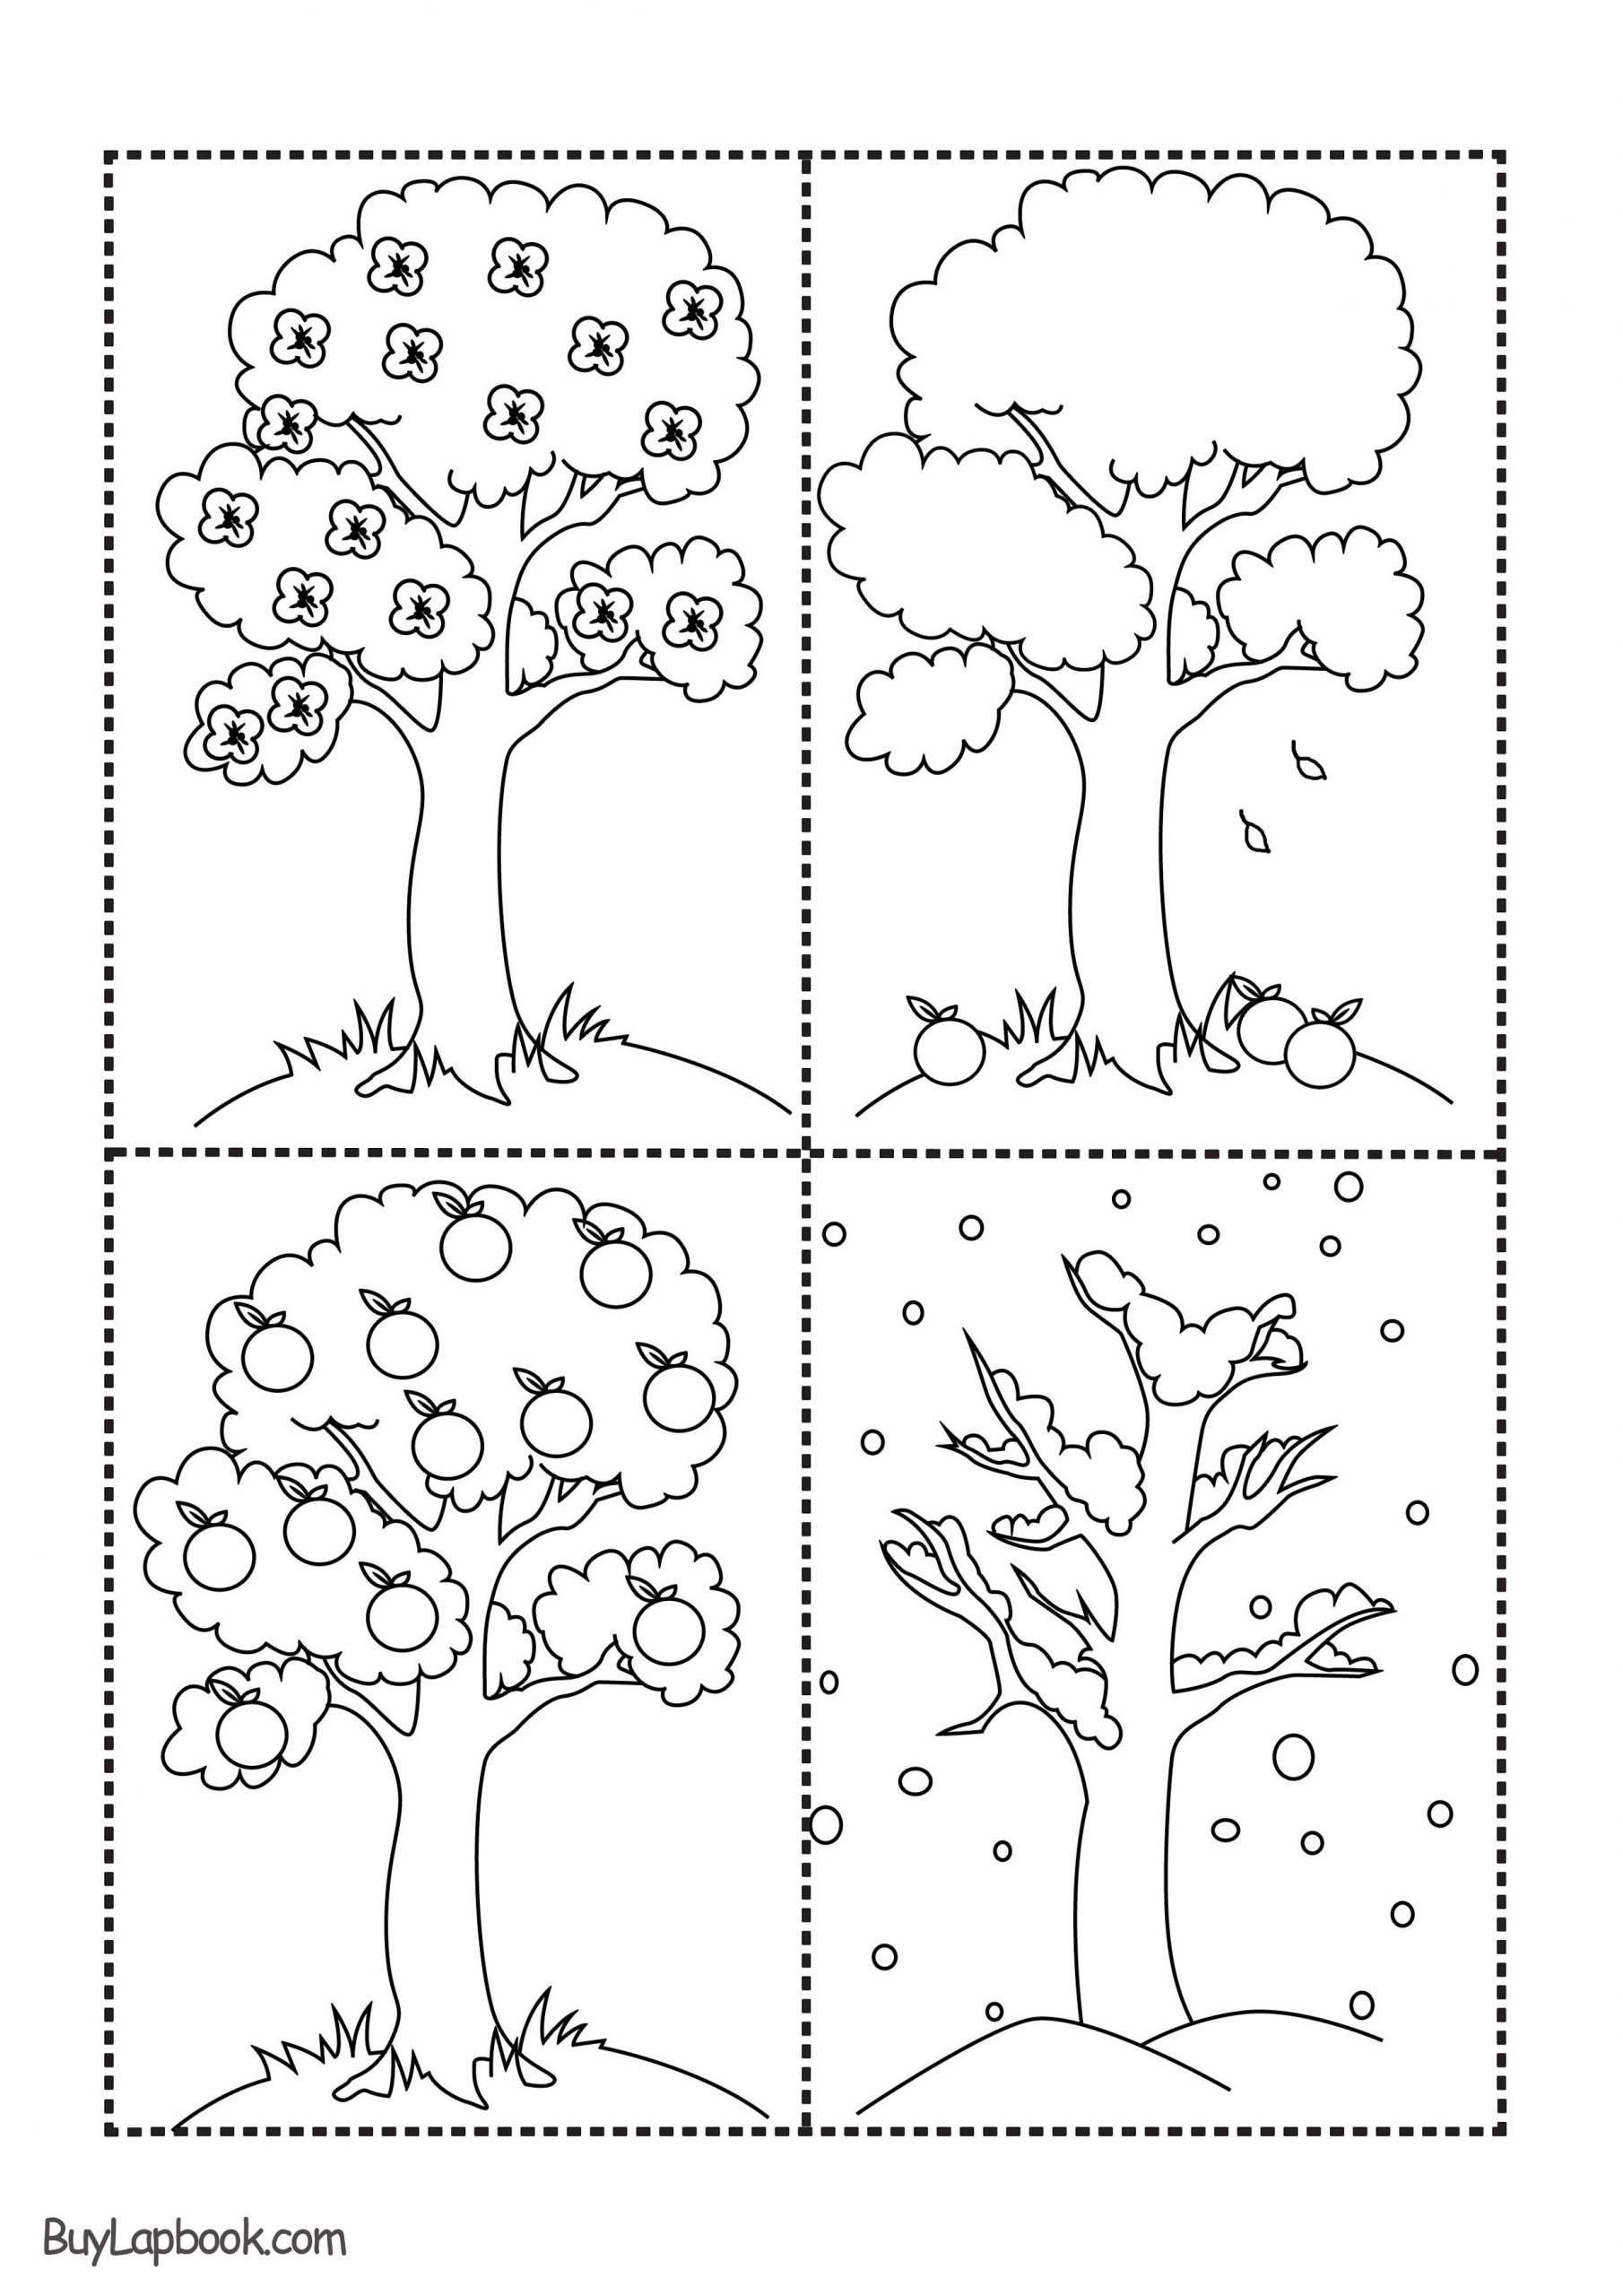 Four Seasons Kindergarten Worksheets the Four Seasons Of the Apple Tree Printables – Buylapbook